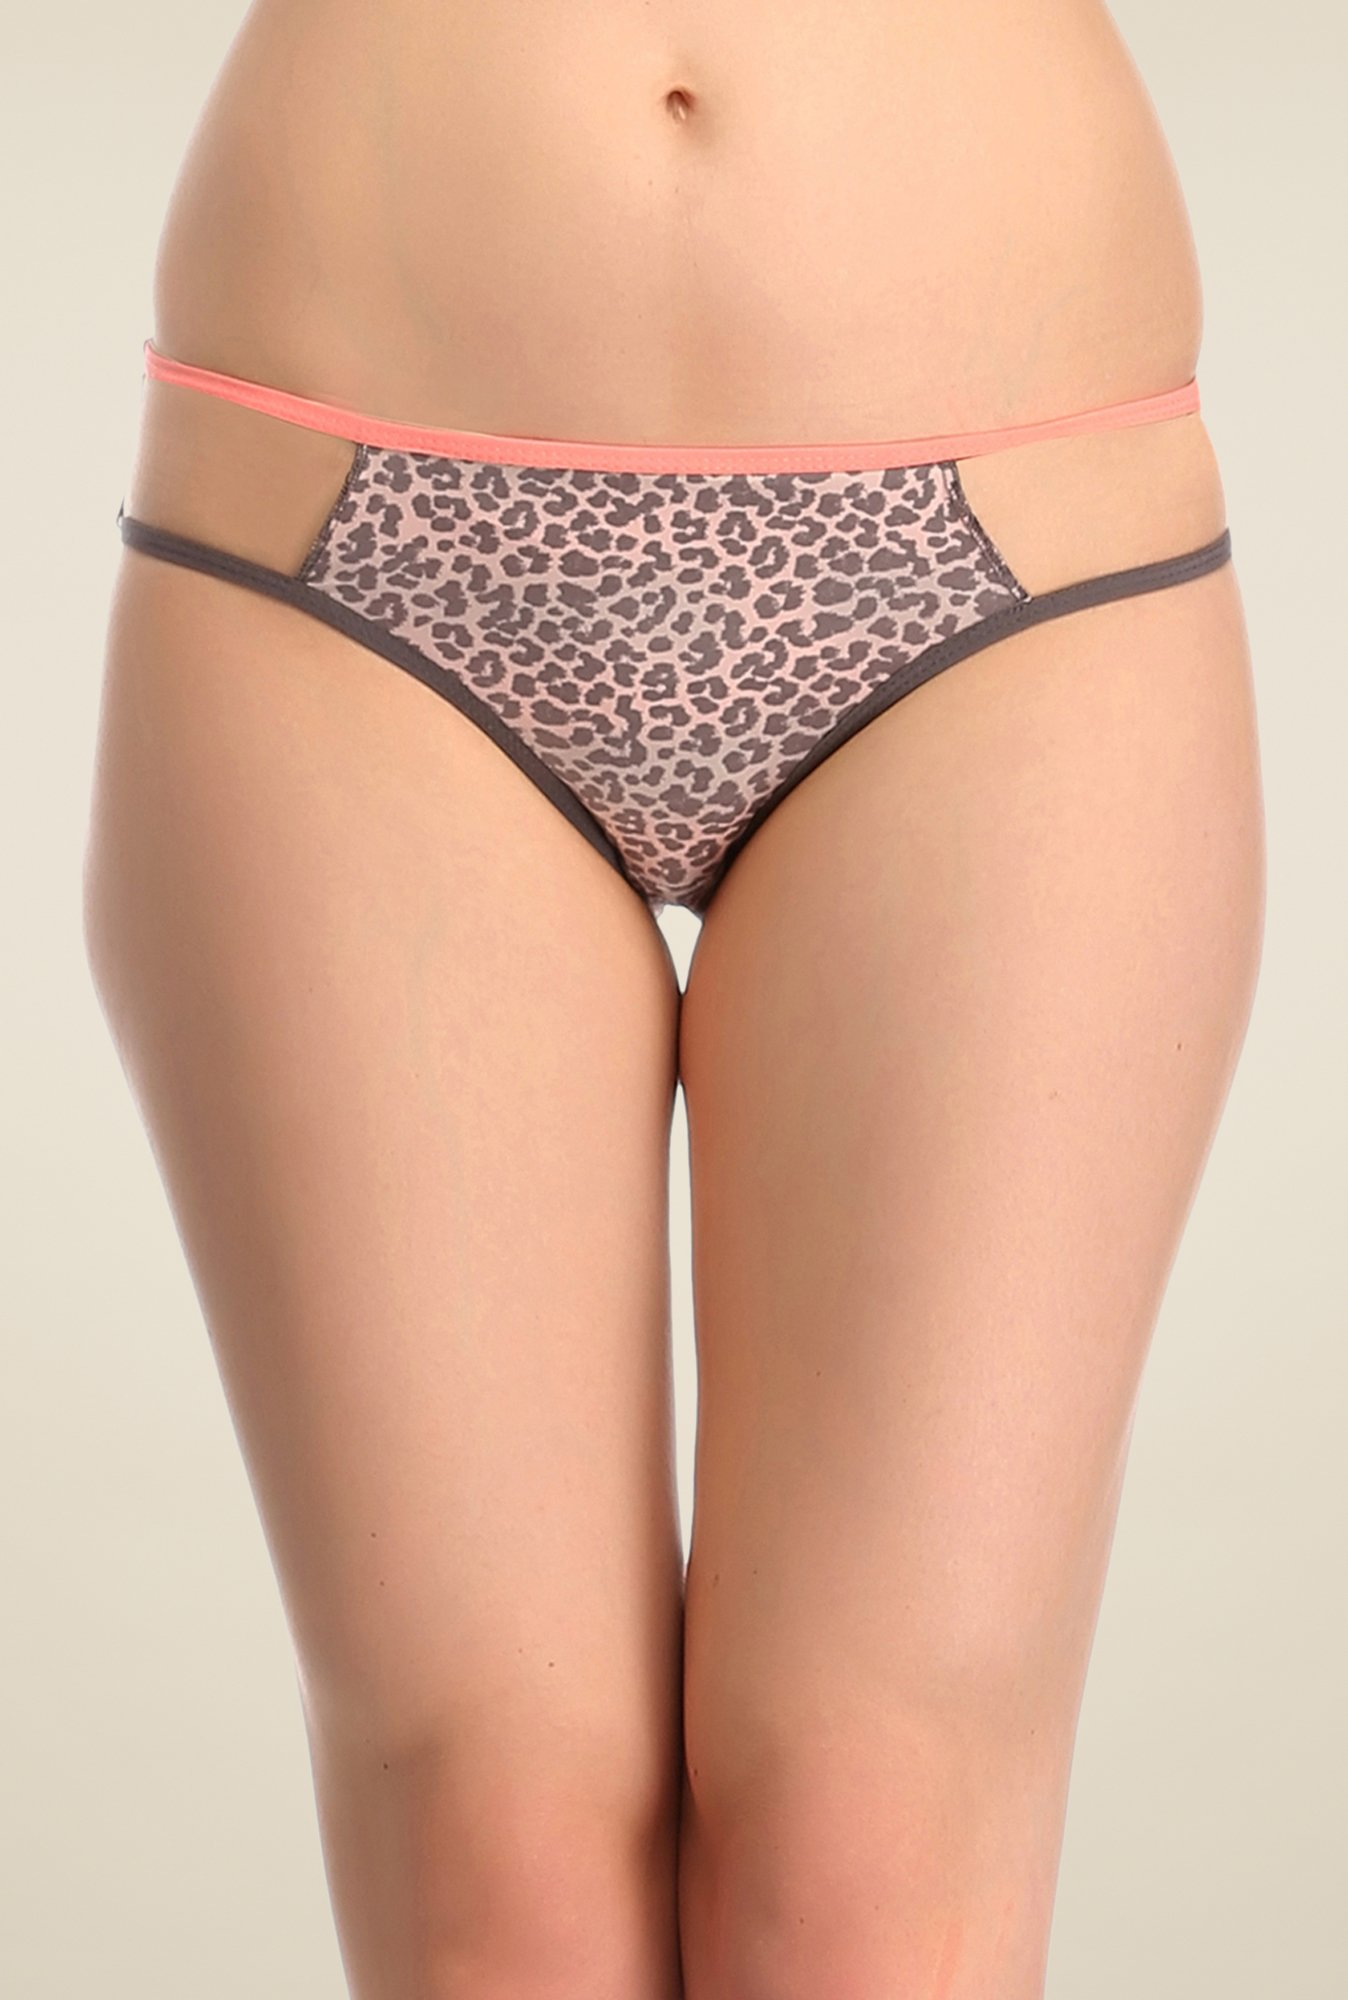 Clovia Grey Animal Print Bikini Panty